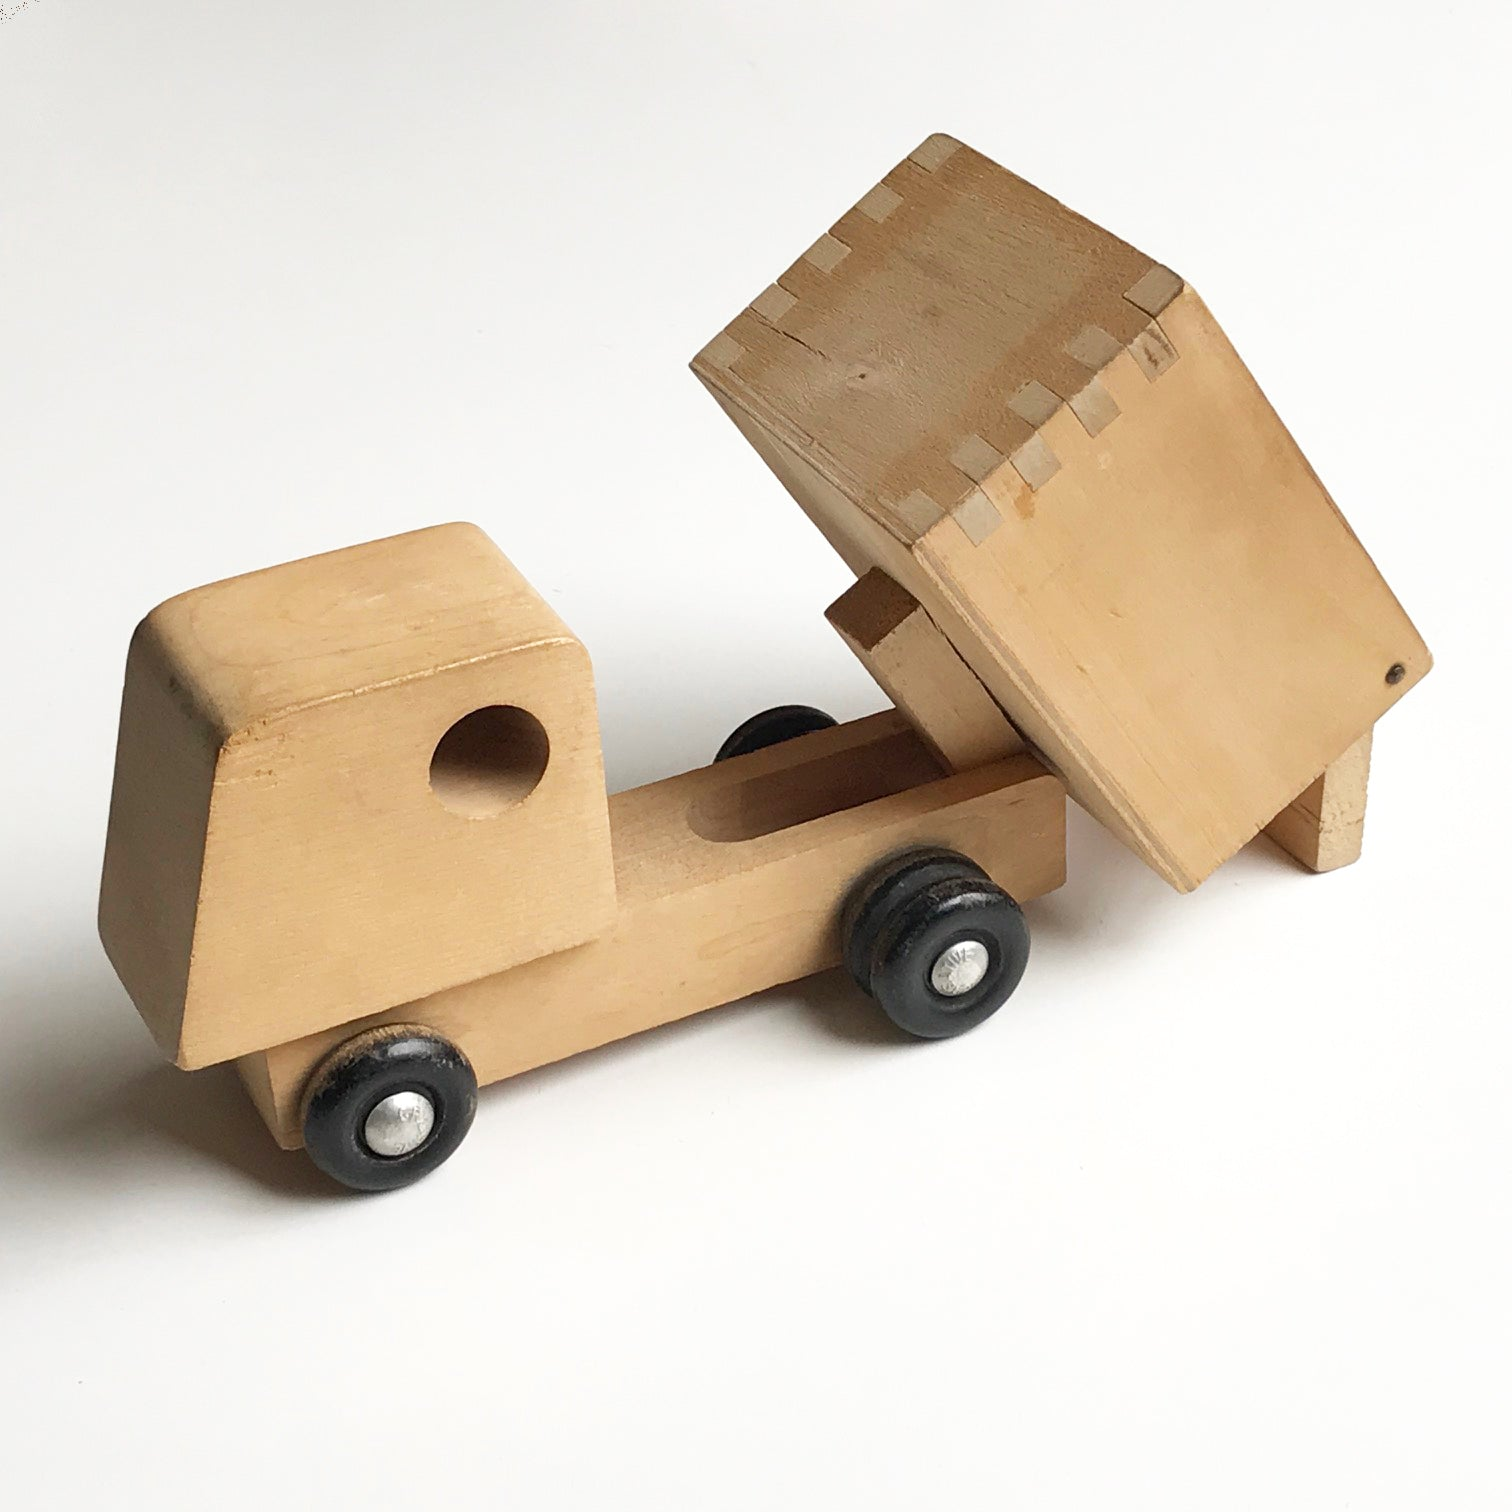 Creative Playthings Wooden Dump Truck